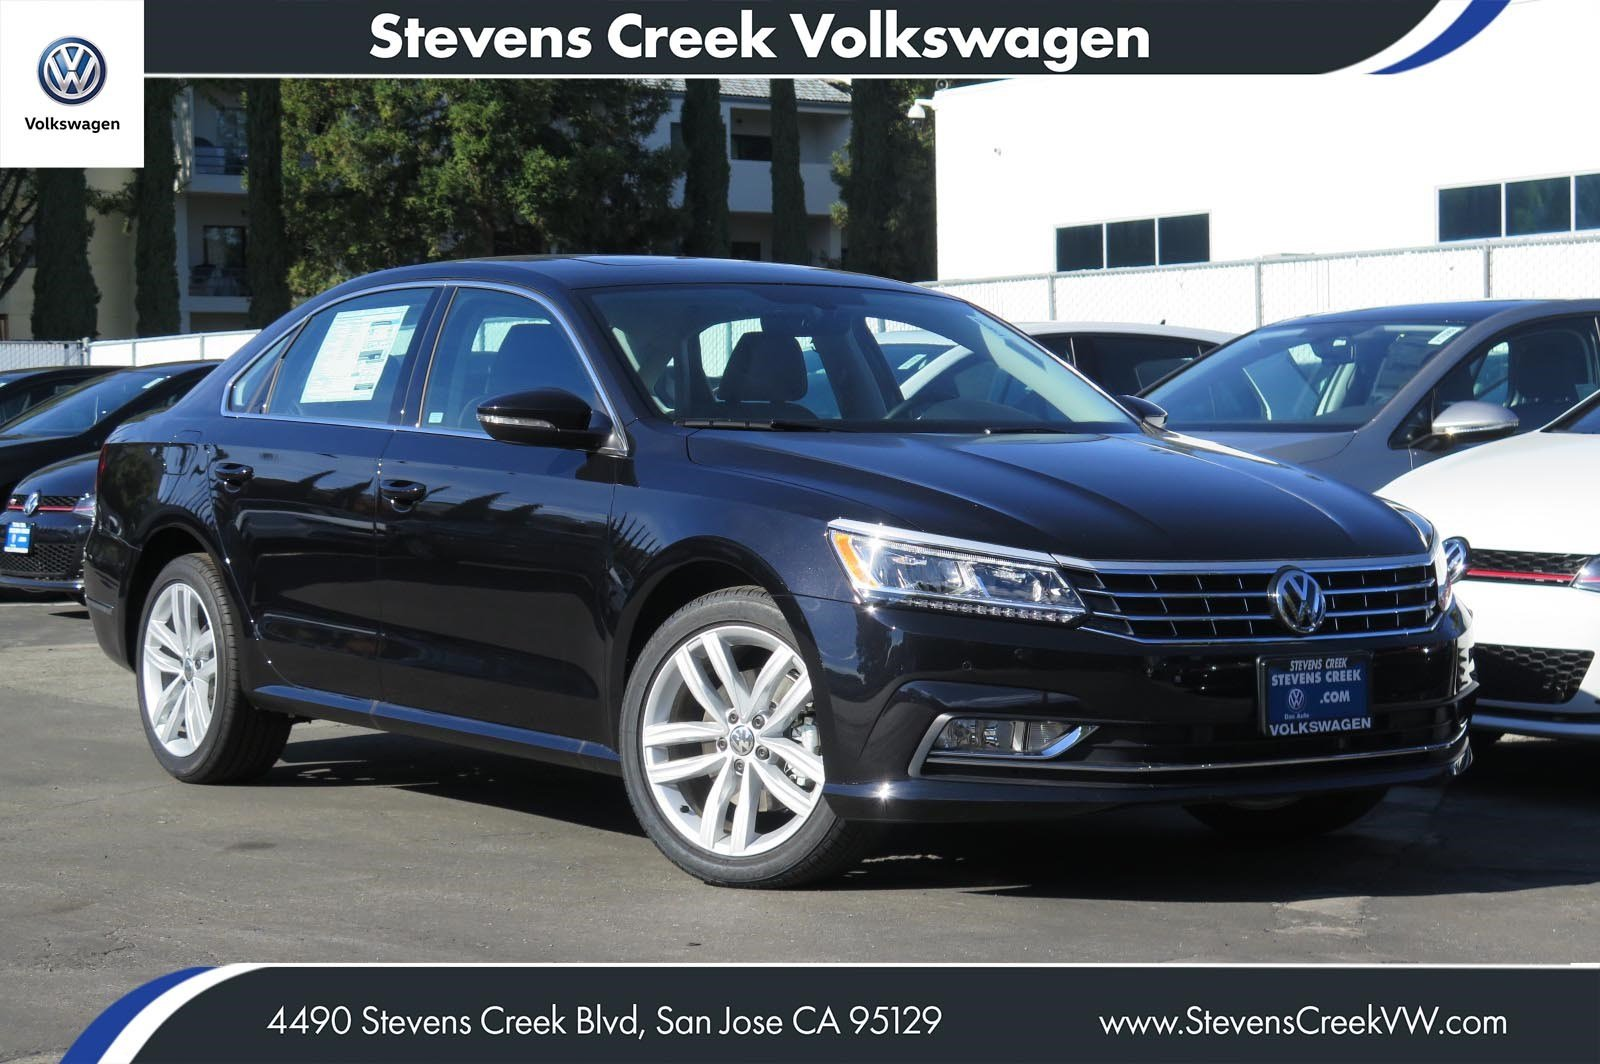 New 2018 Volkswagen Passat 2.0T SE w/Technology FWD 4dr Car VIN JC001805 MSRP $30,900